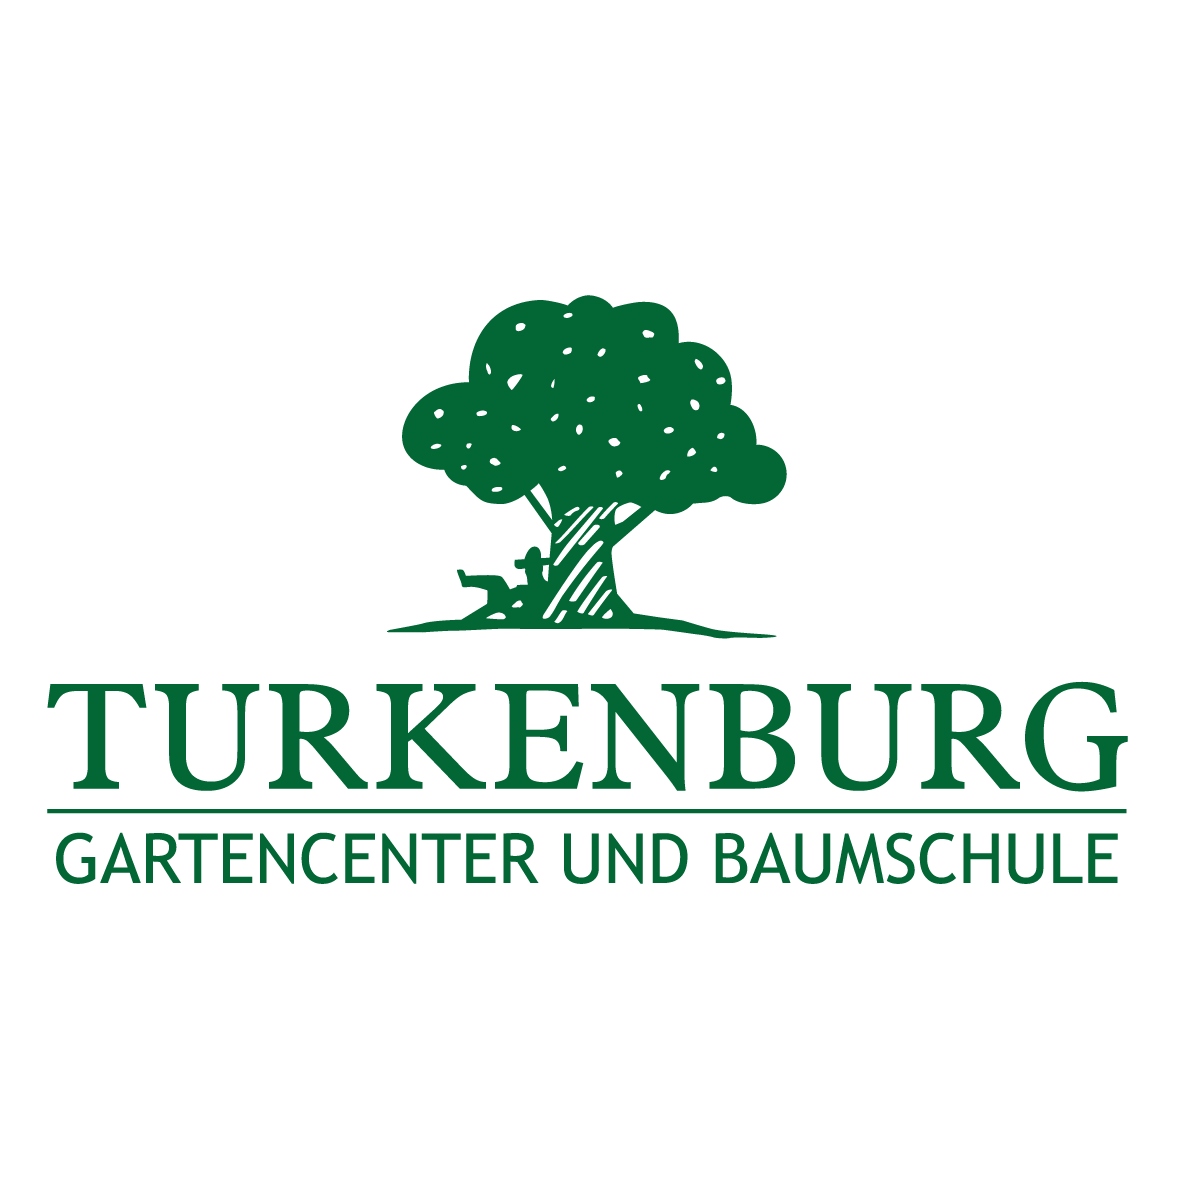 Turkenburg Gartencenter